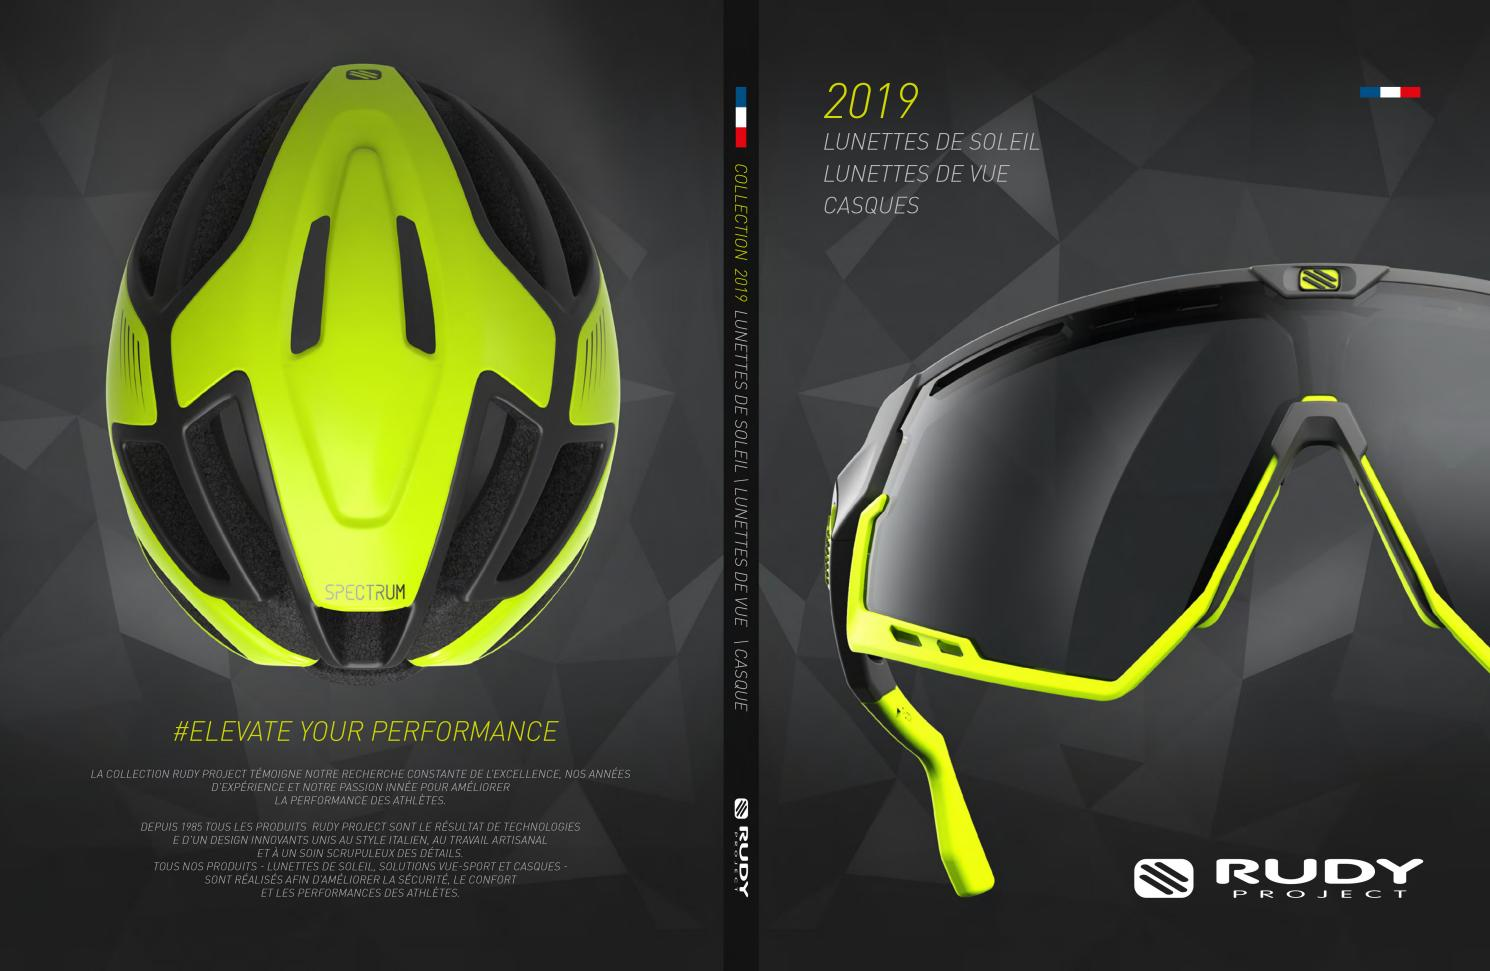 0636d917ebd Rudy Project 2019 FR by hostettler group - issuu